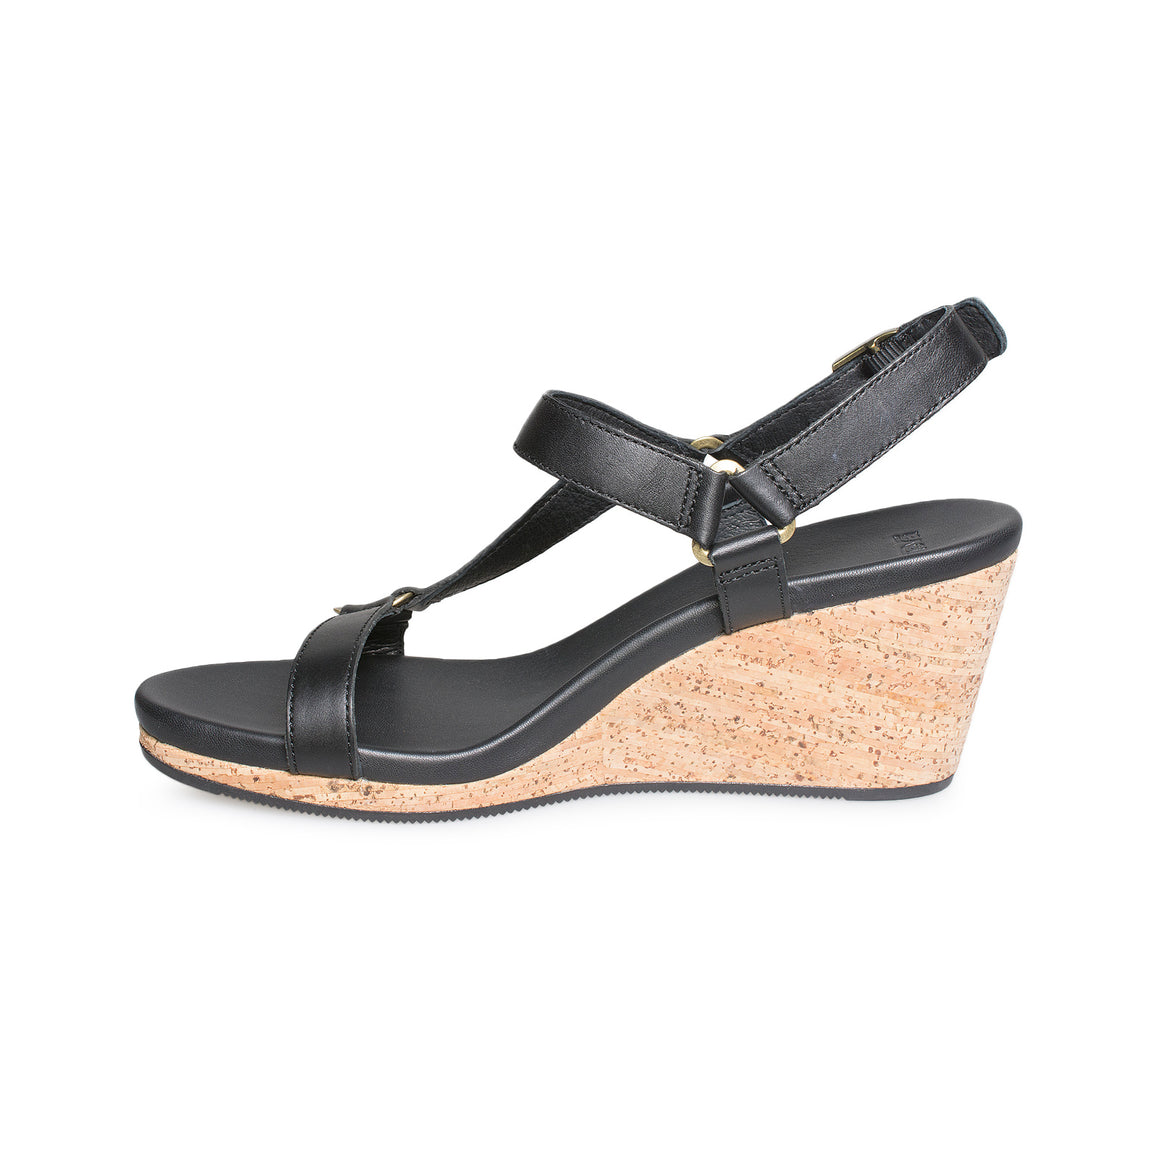 Teva Arrabelle Universal Leather Black Sandals - Women's